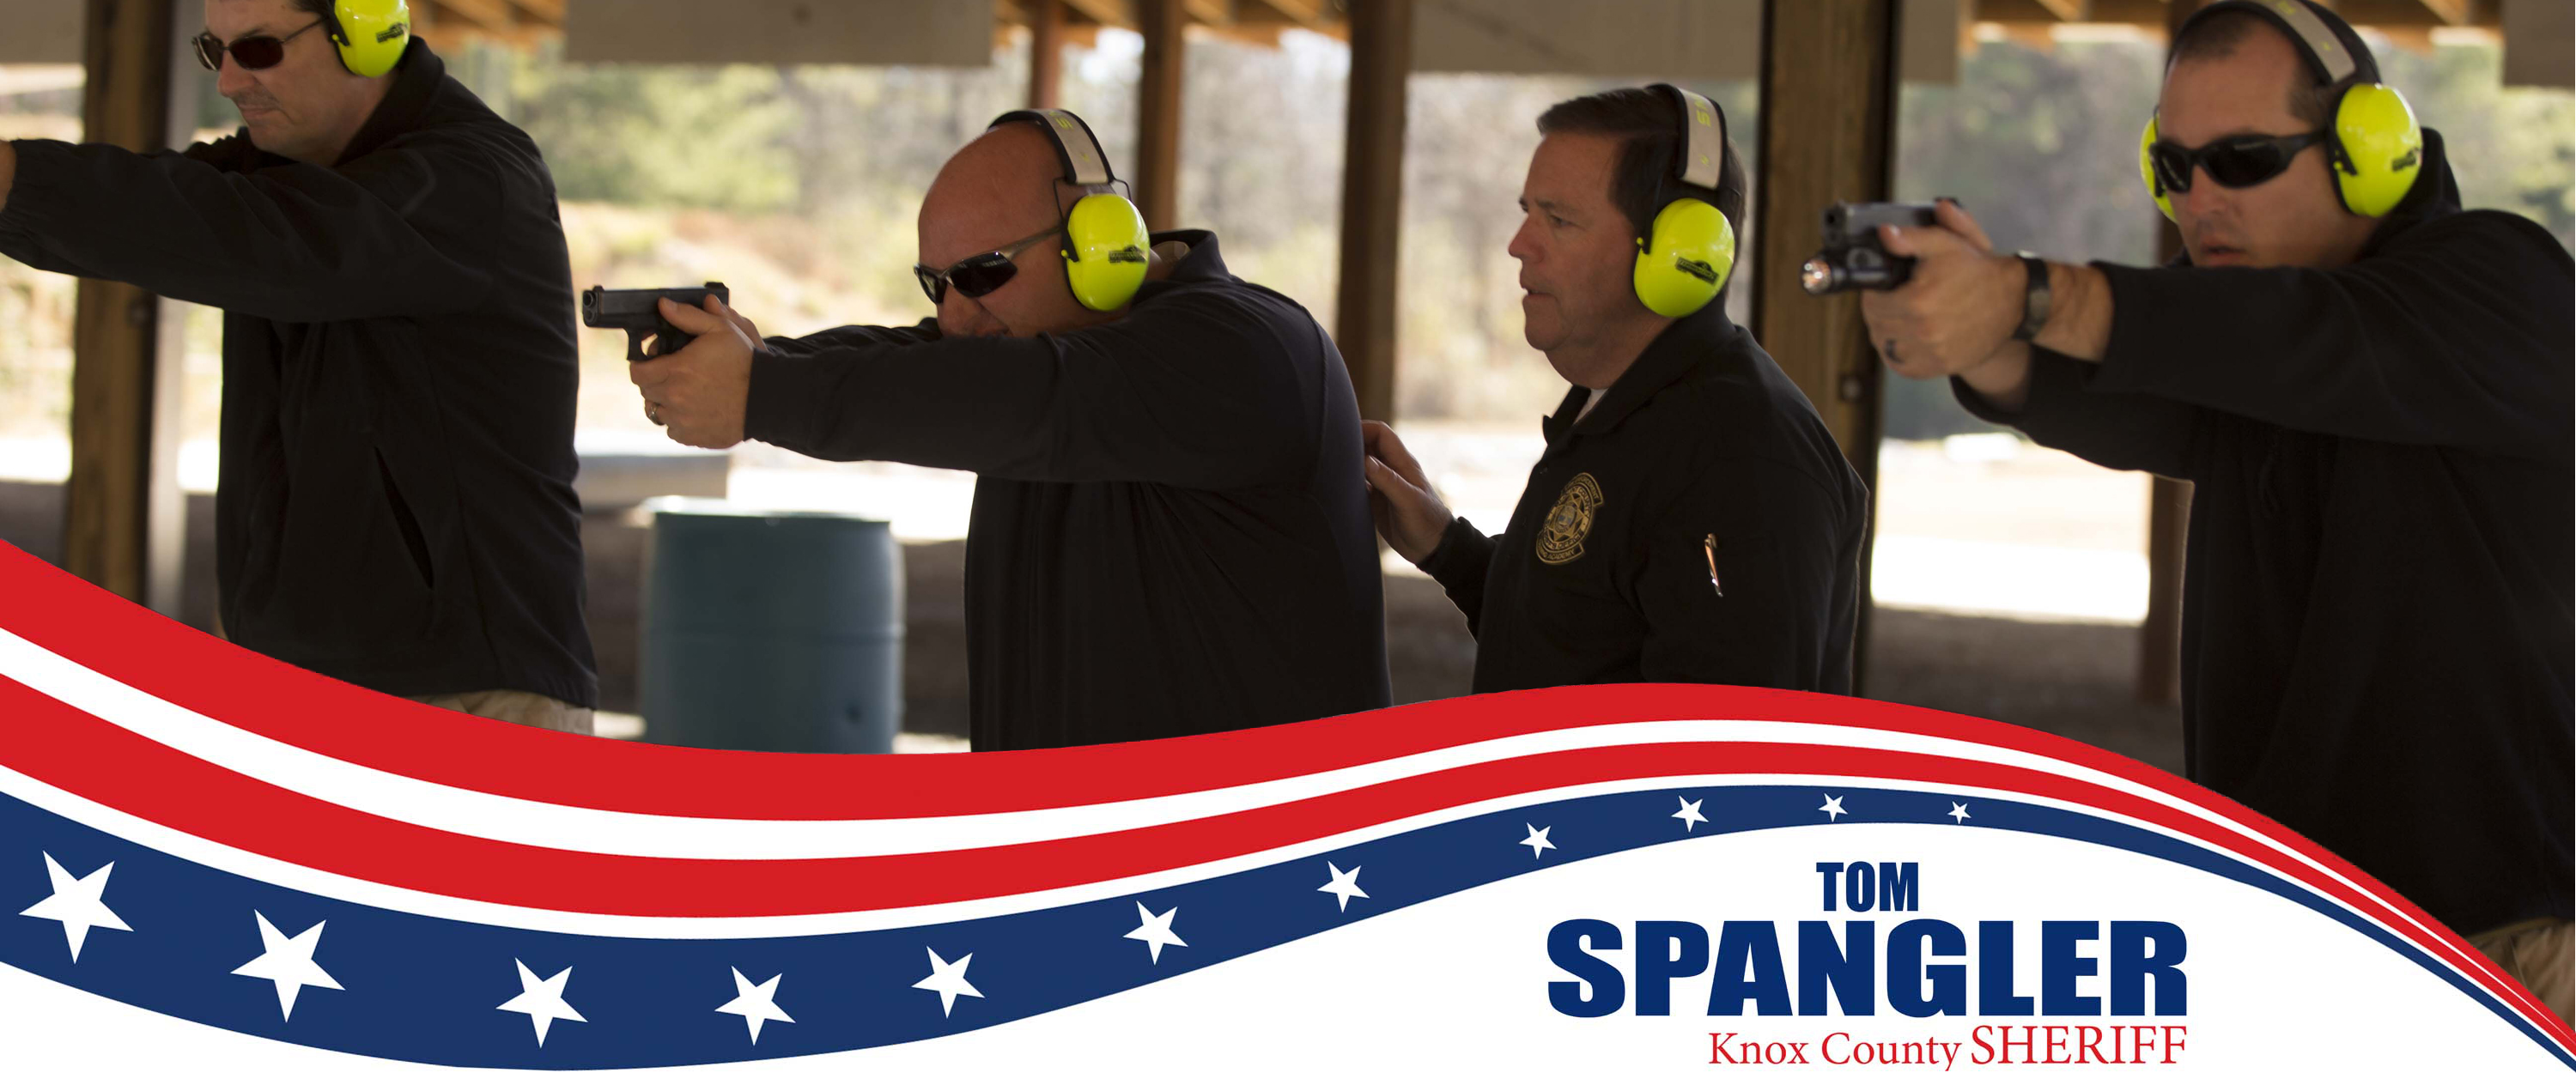 Tom Spangler Training the Firing Range